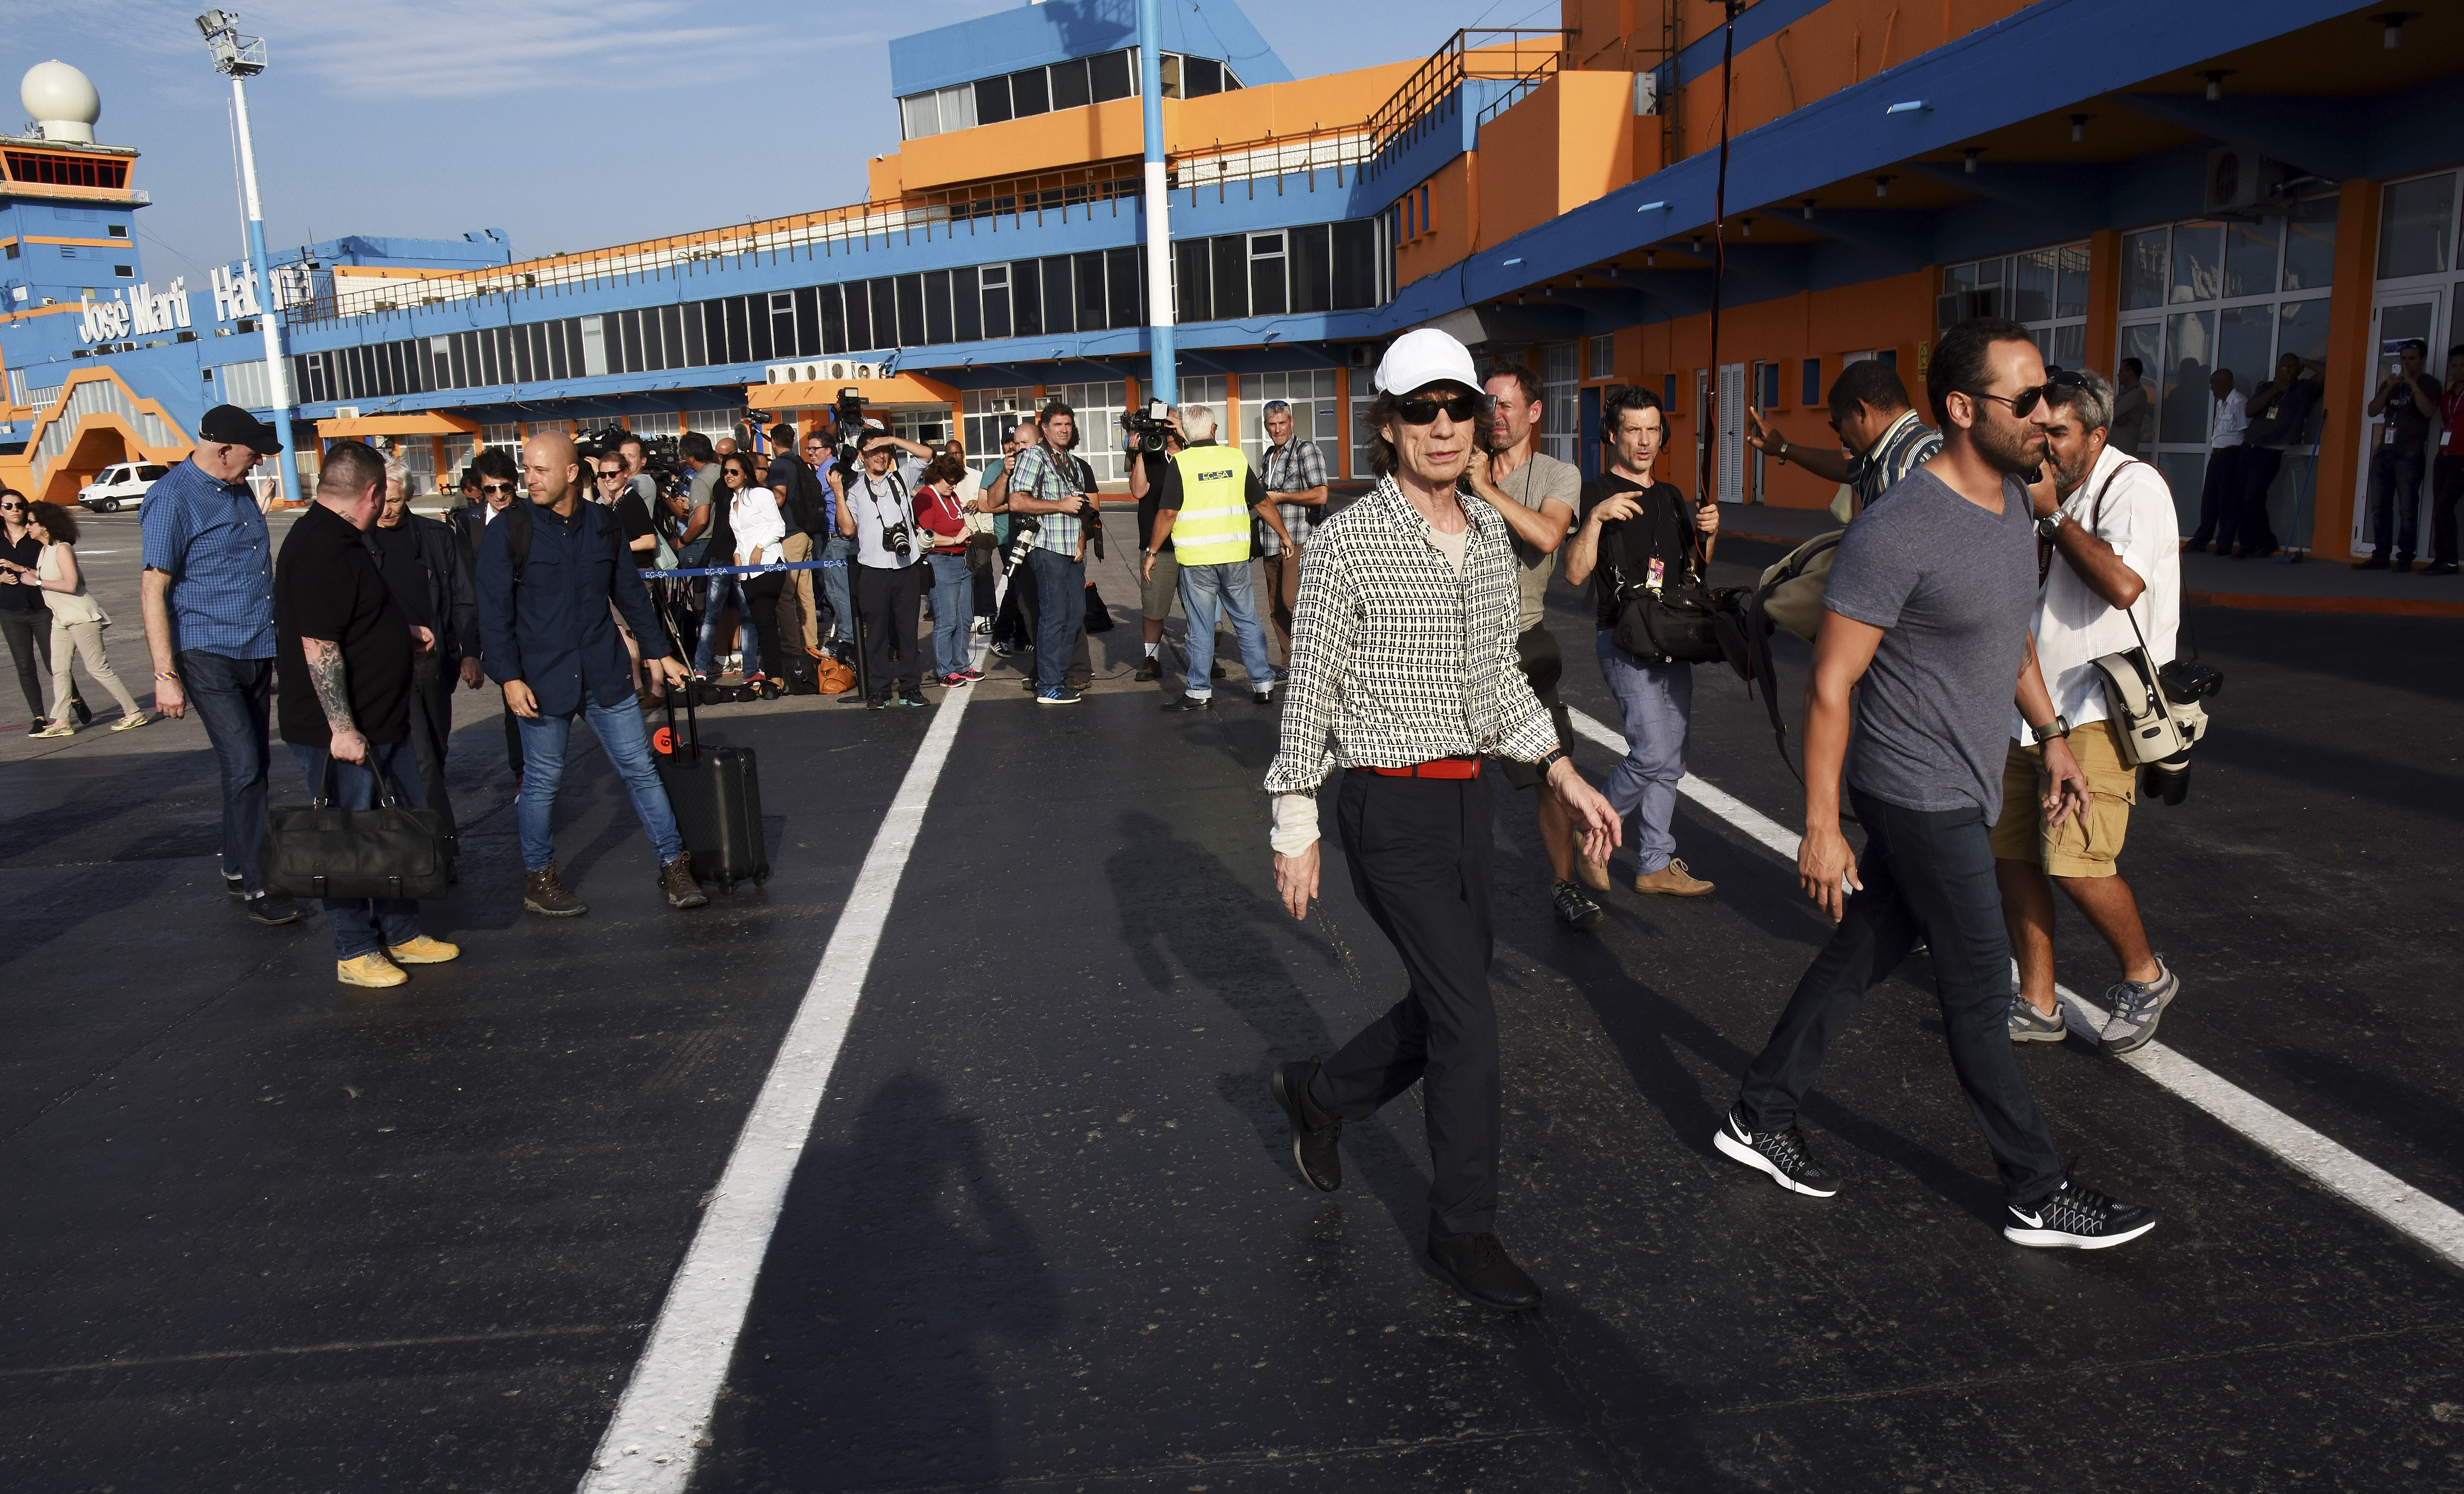 arrive for their concert in Havana at Jose Marti International Airport on March 24, 2016 in Havana, Cuba.